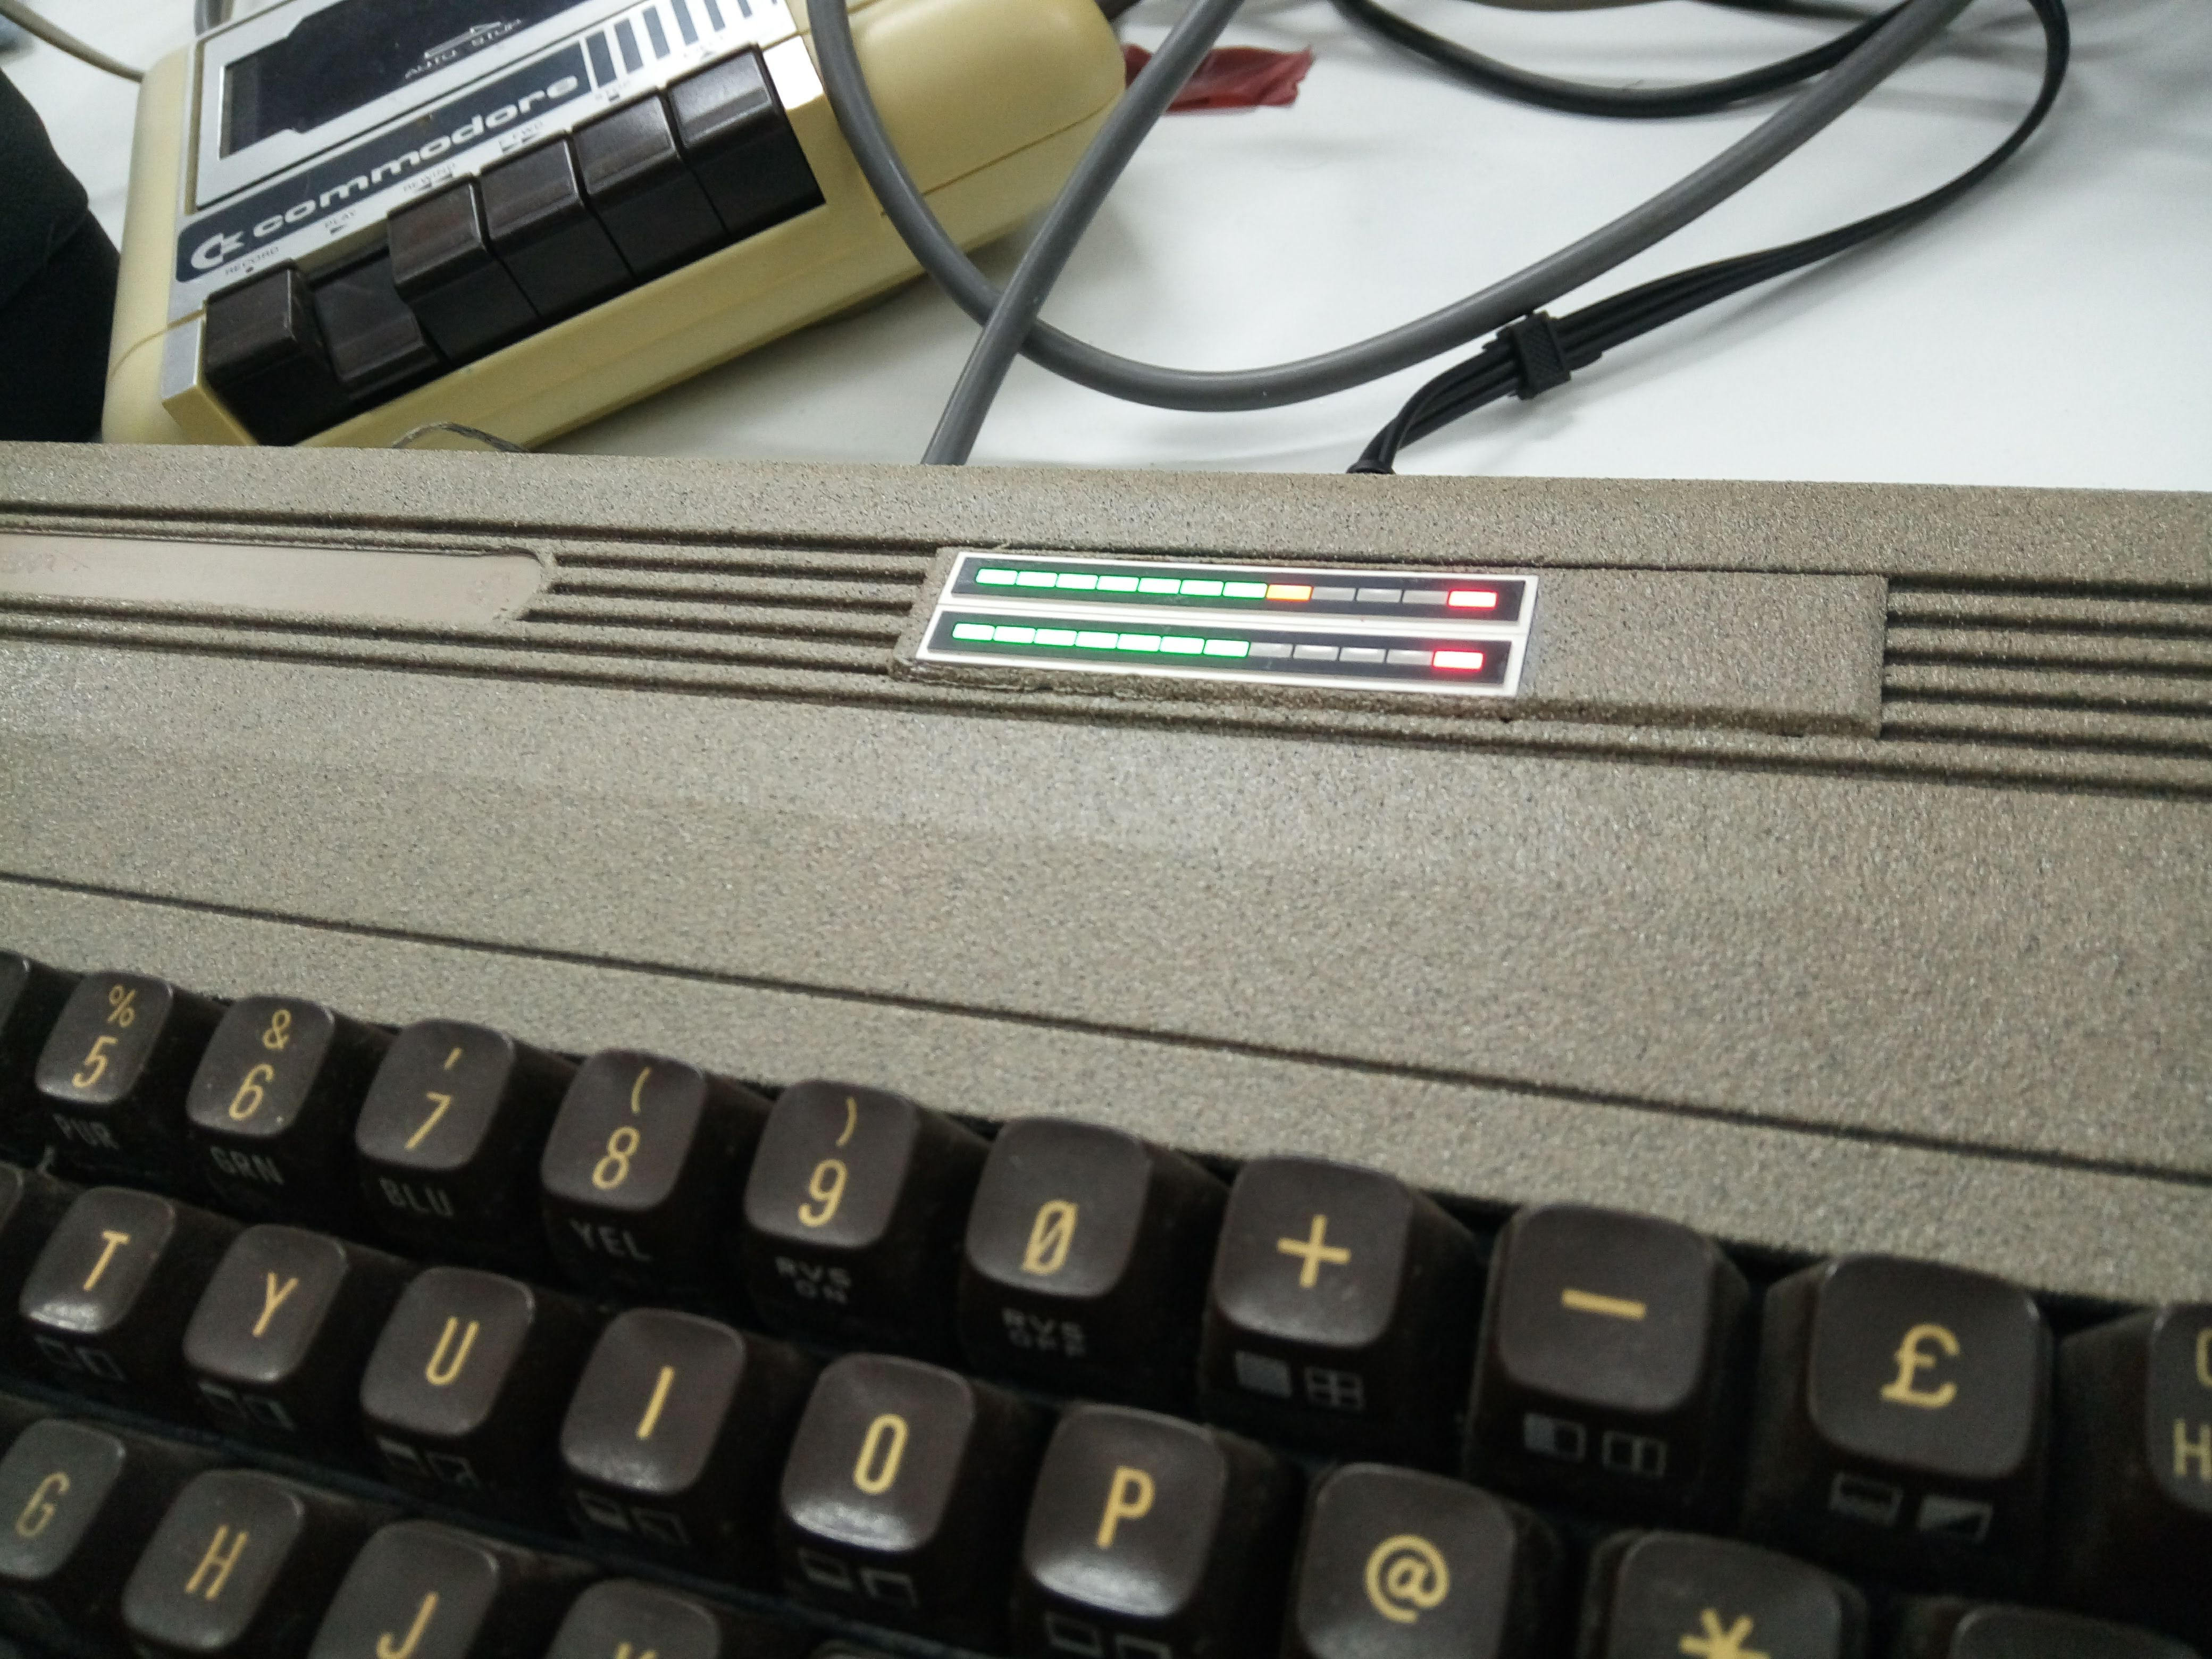 Stone C64 with VU meter